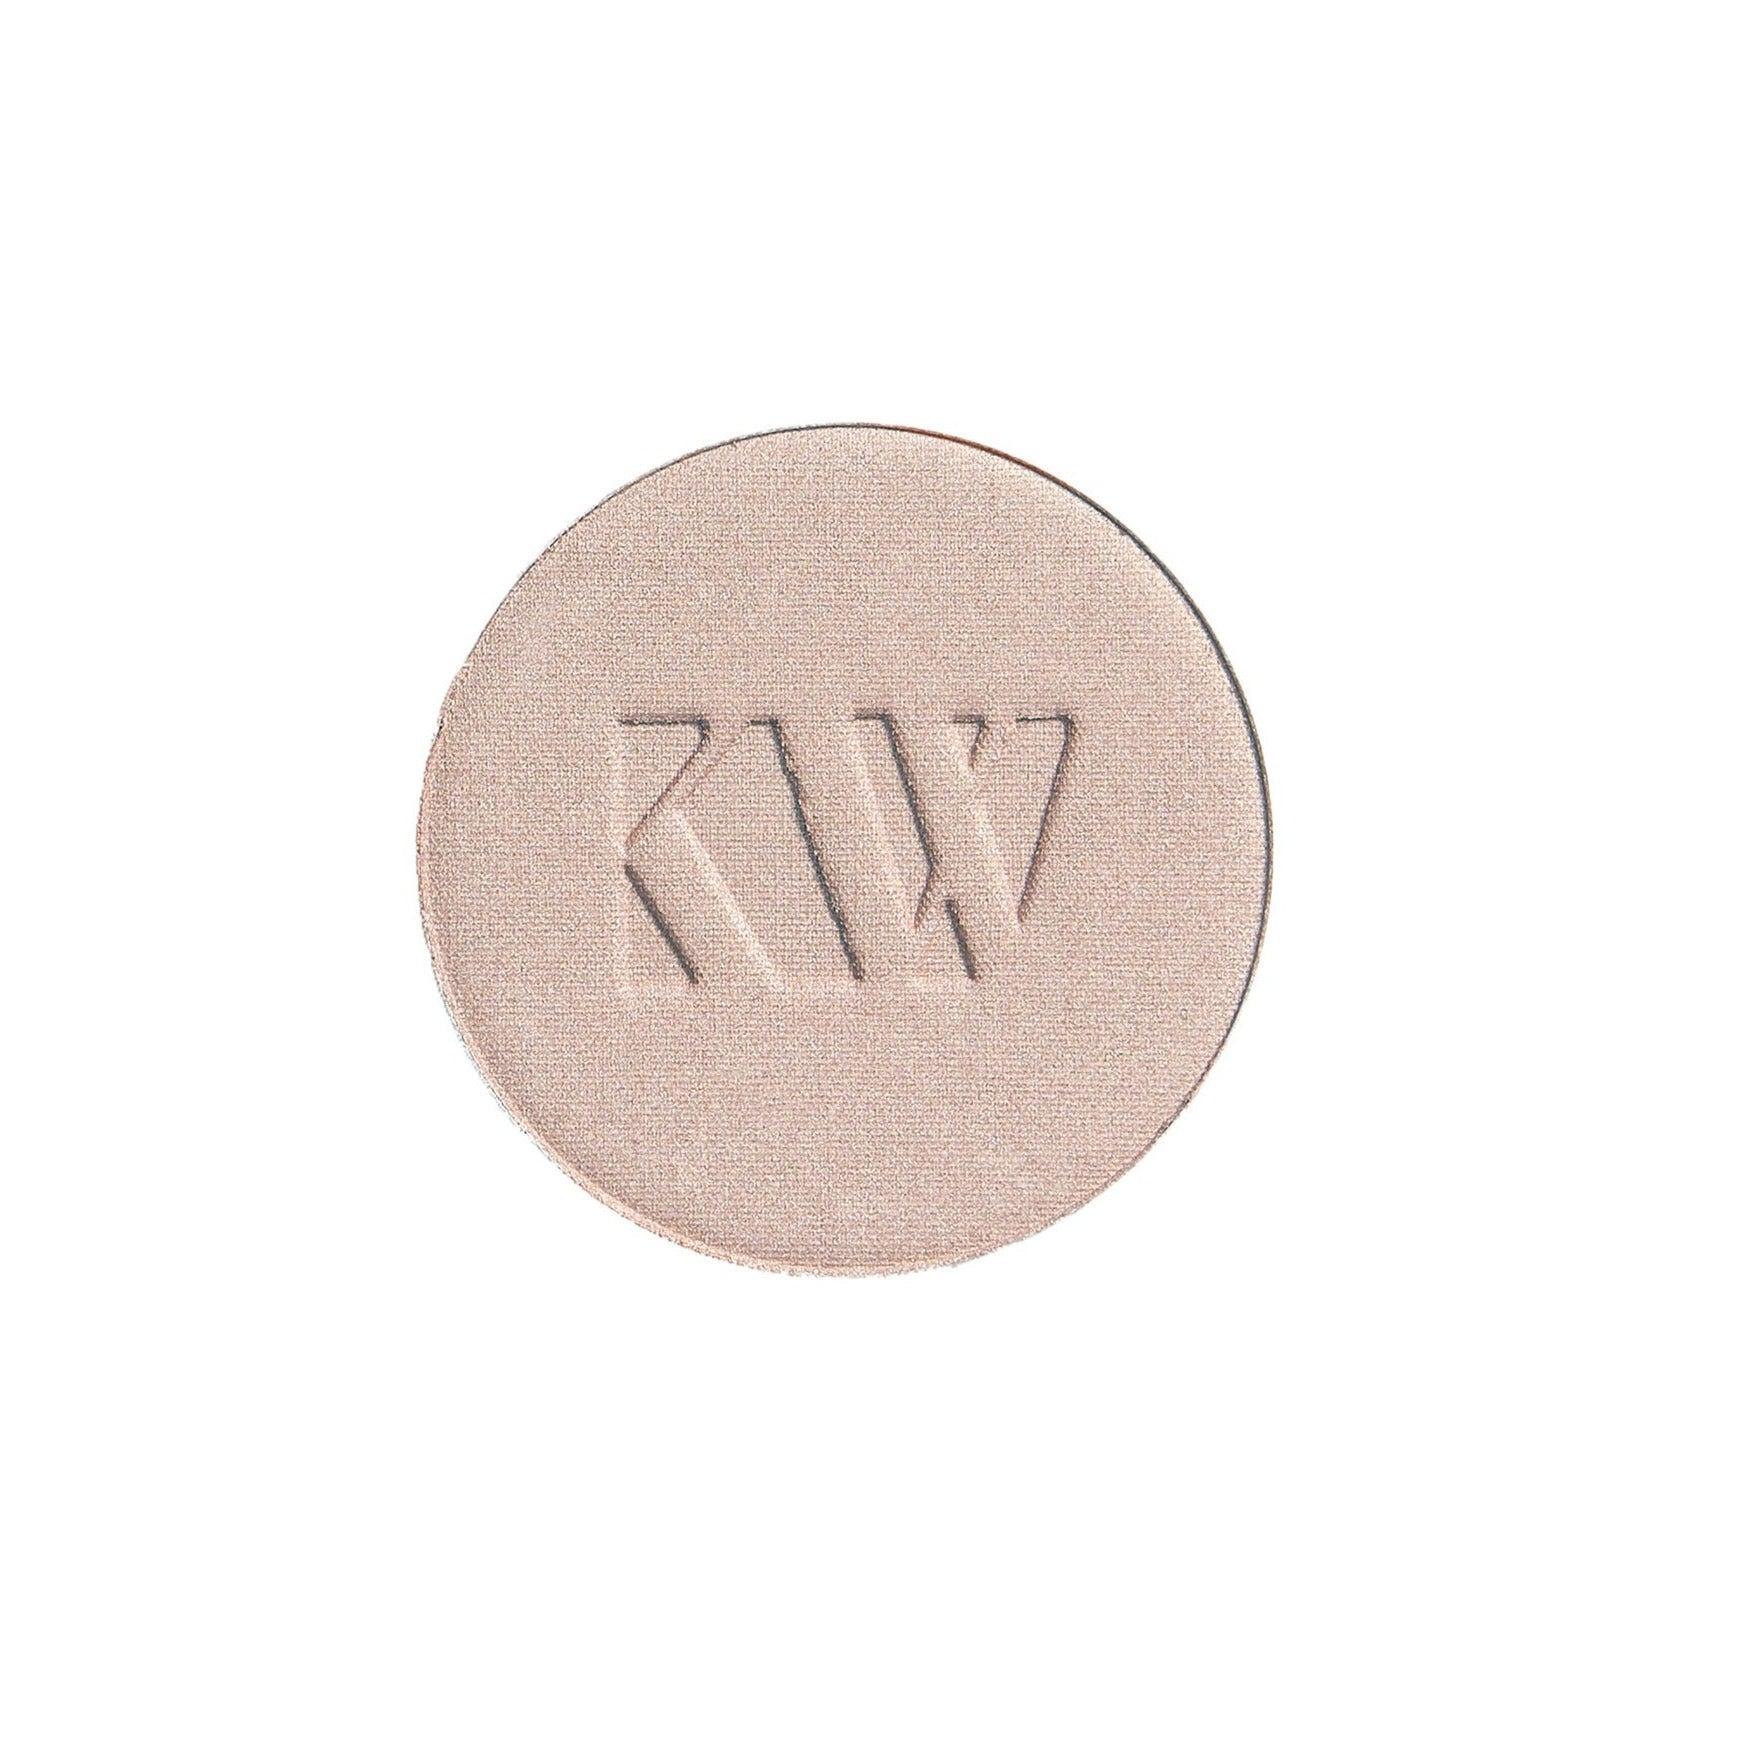 Kjaer Weis - Light Slip Highlighter